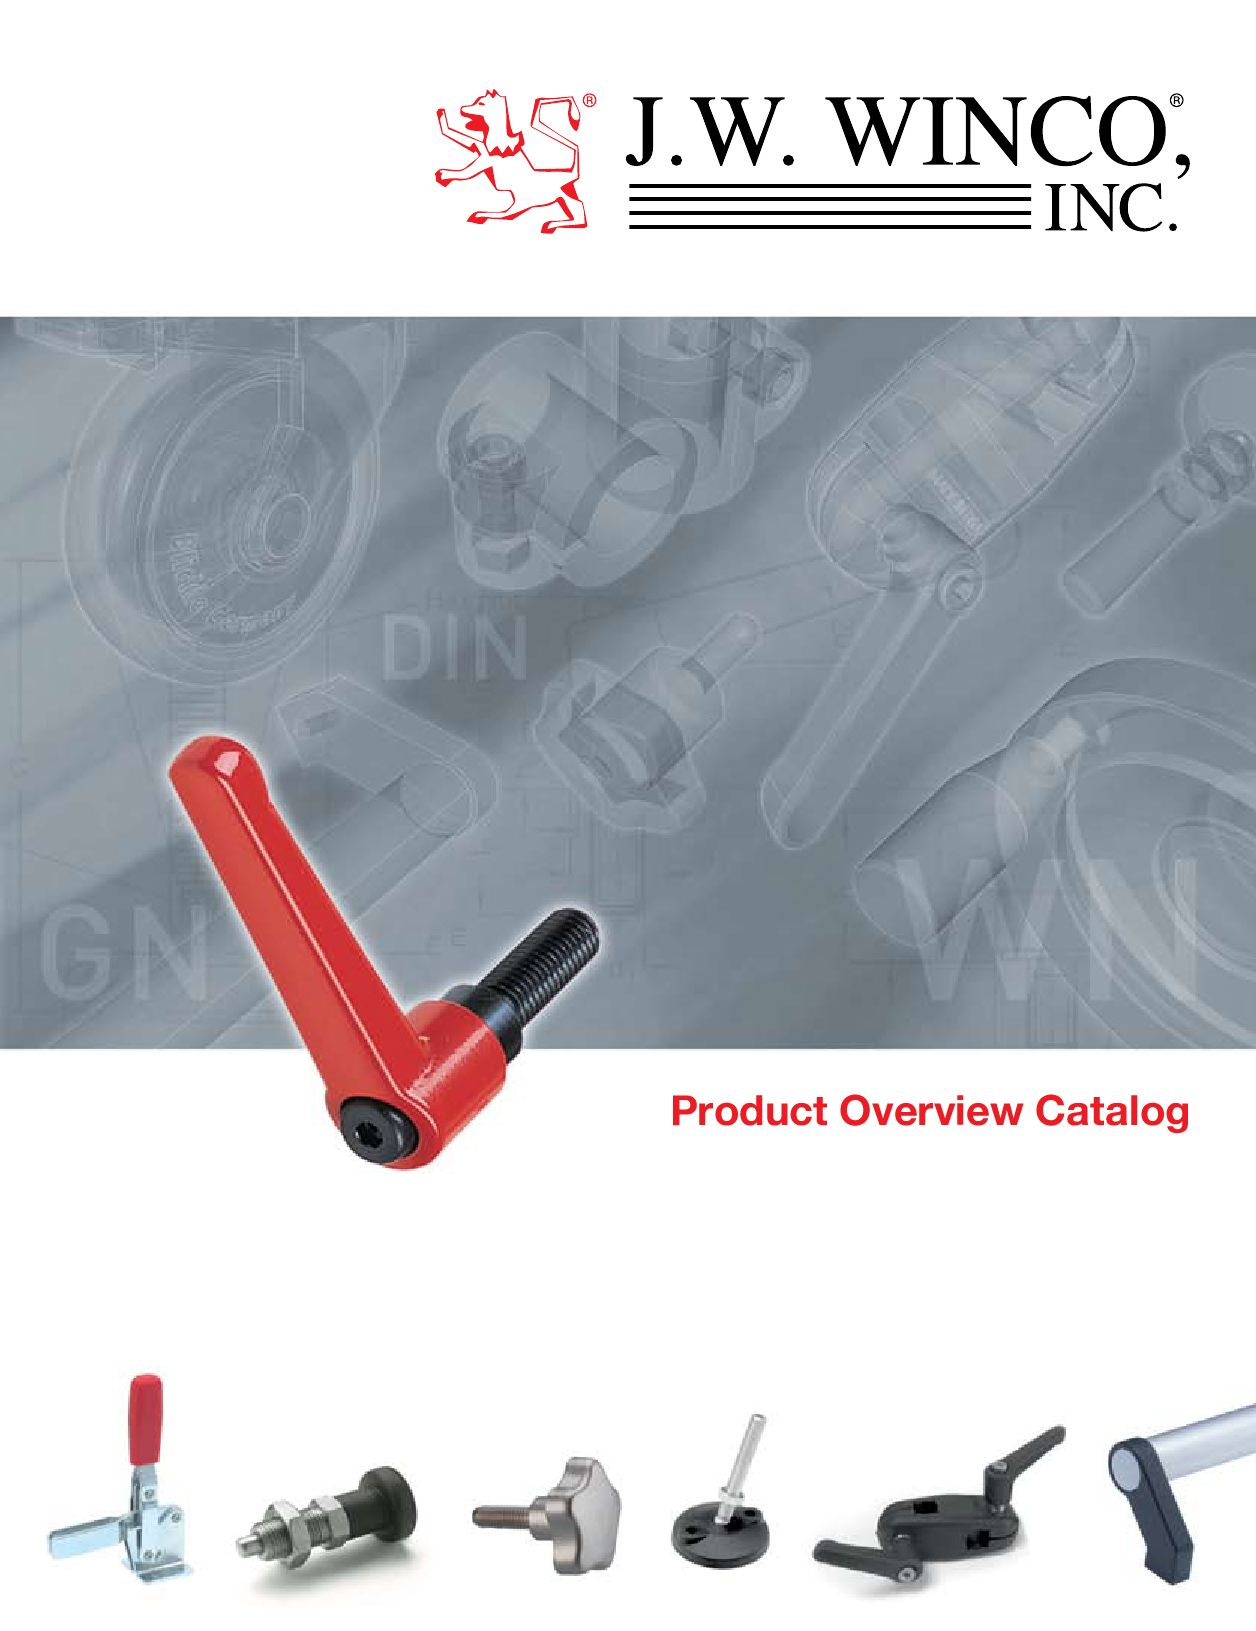 J W Winco Product Overview Catalog by Diane Lau issuu